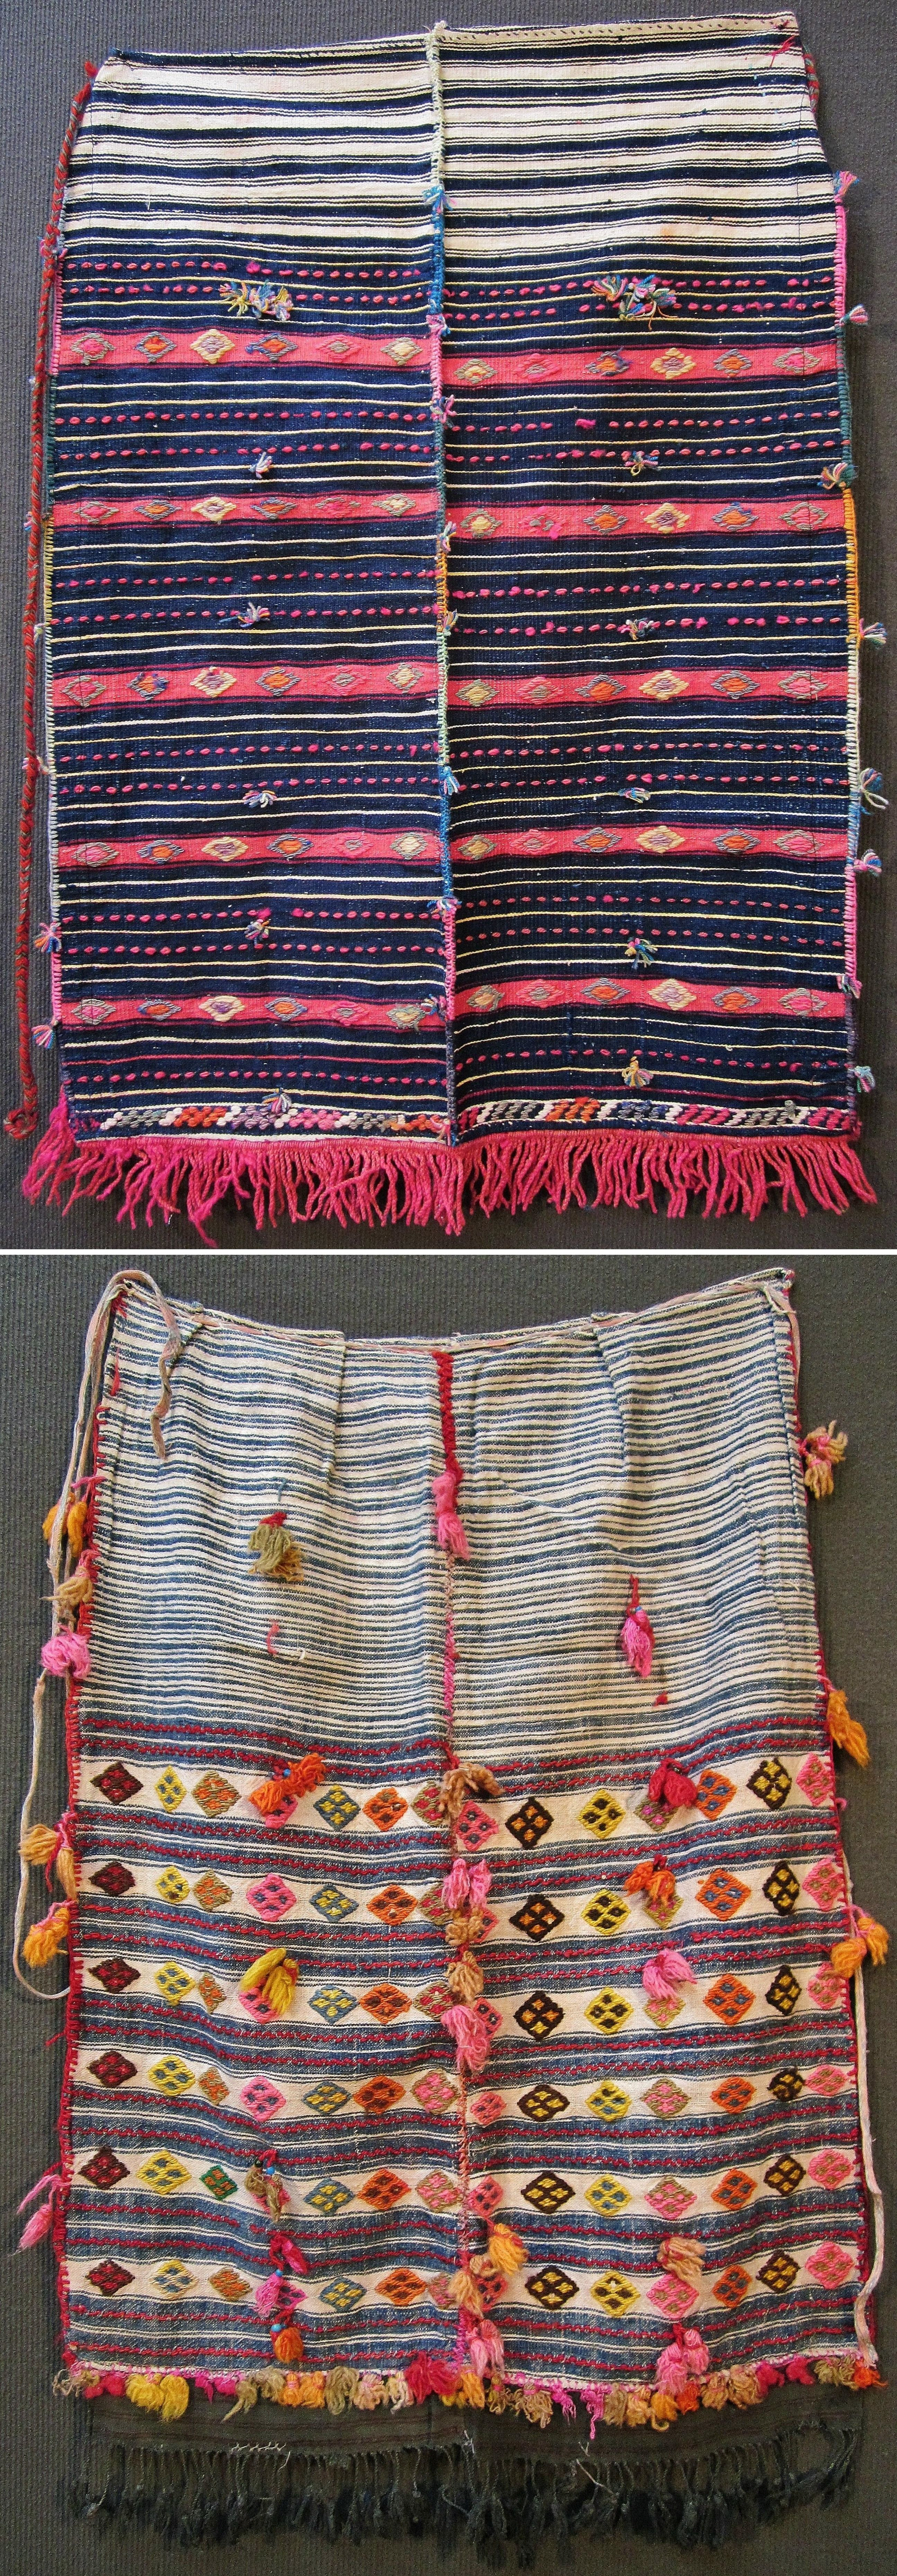 Two traditional 'önlük' (apron) for women, from the